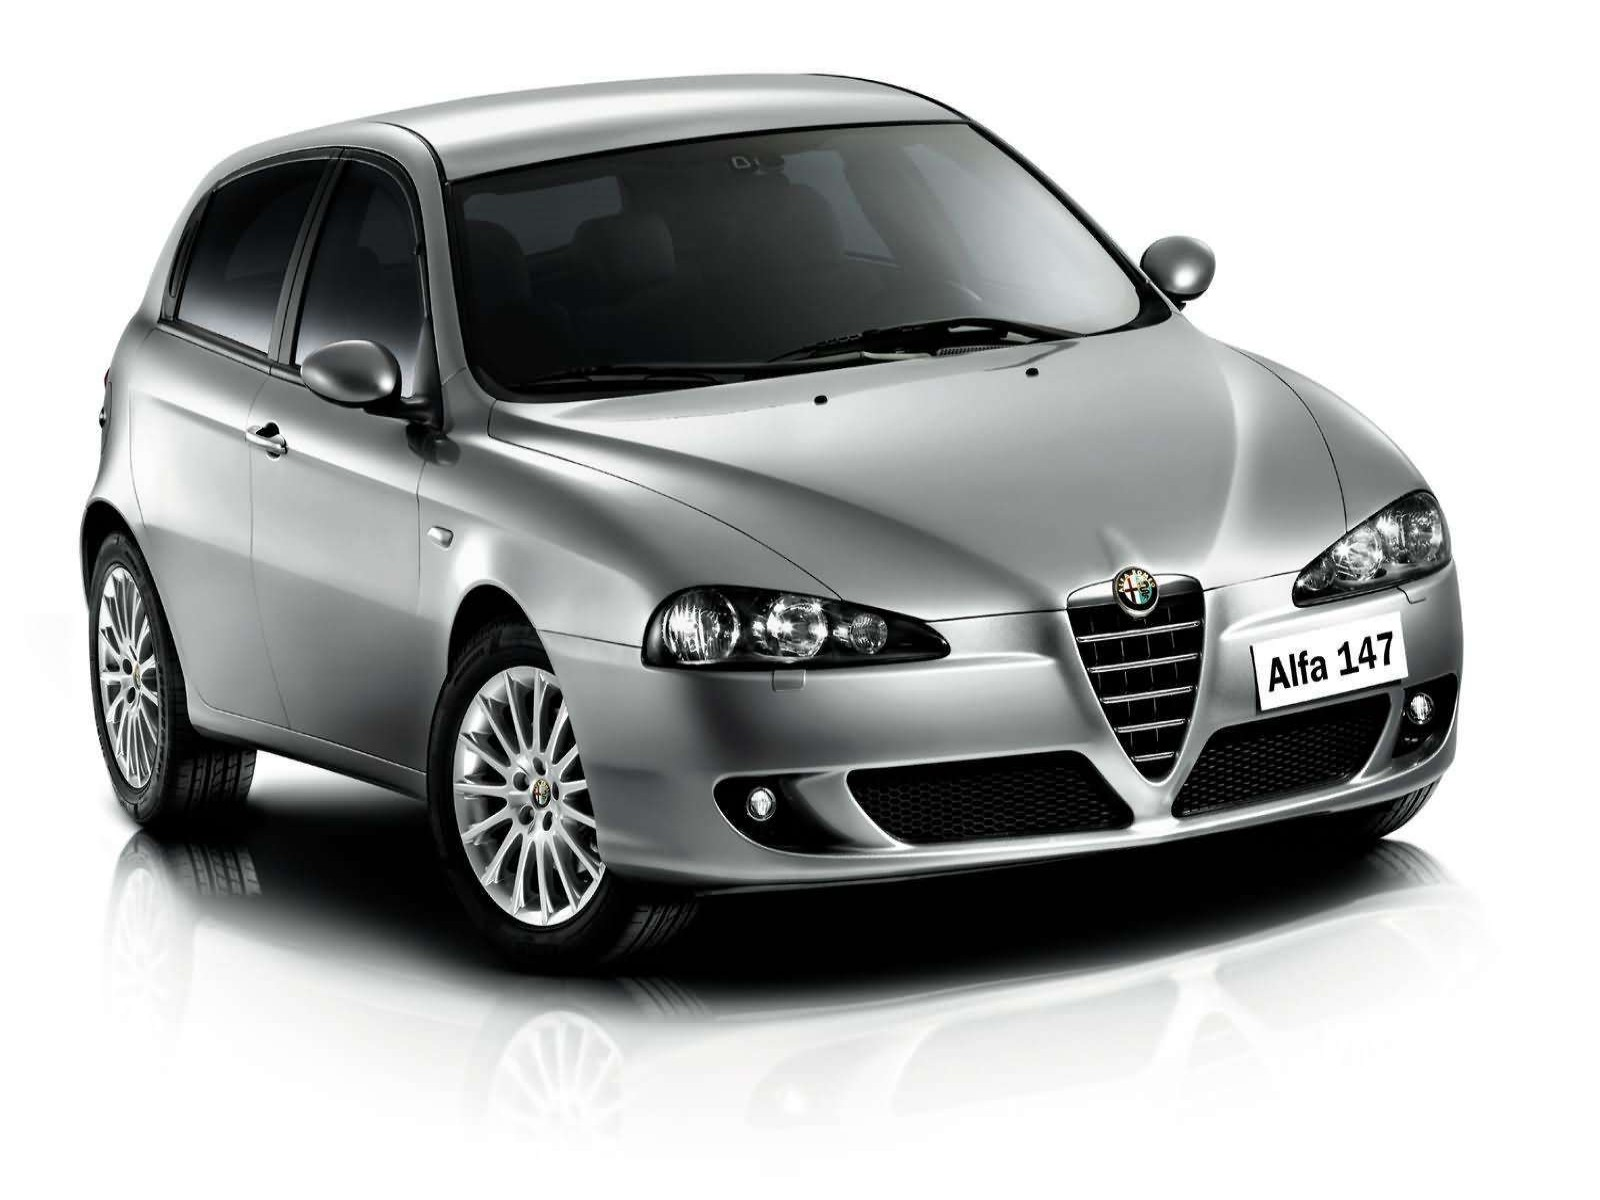 car and car zone alfa romeo 147 5door 2004 new cars car reviews car pictures and auto. Black Bedroom Furniture Sets. Home Design Ideas